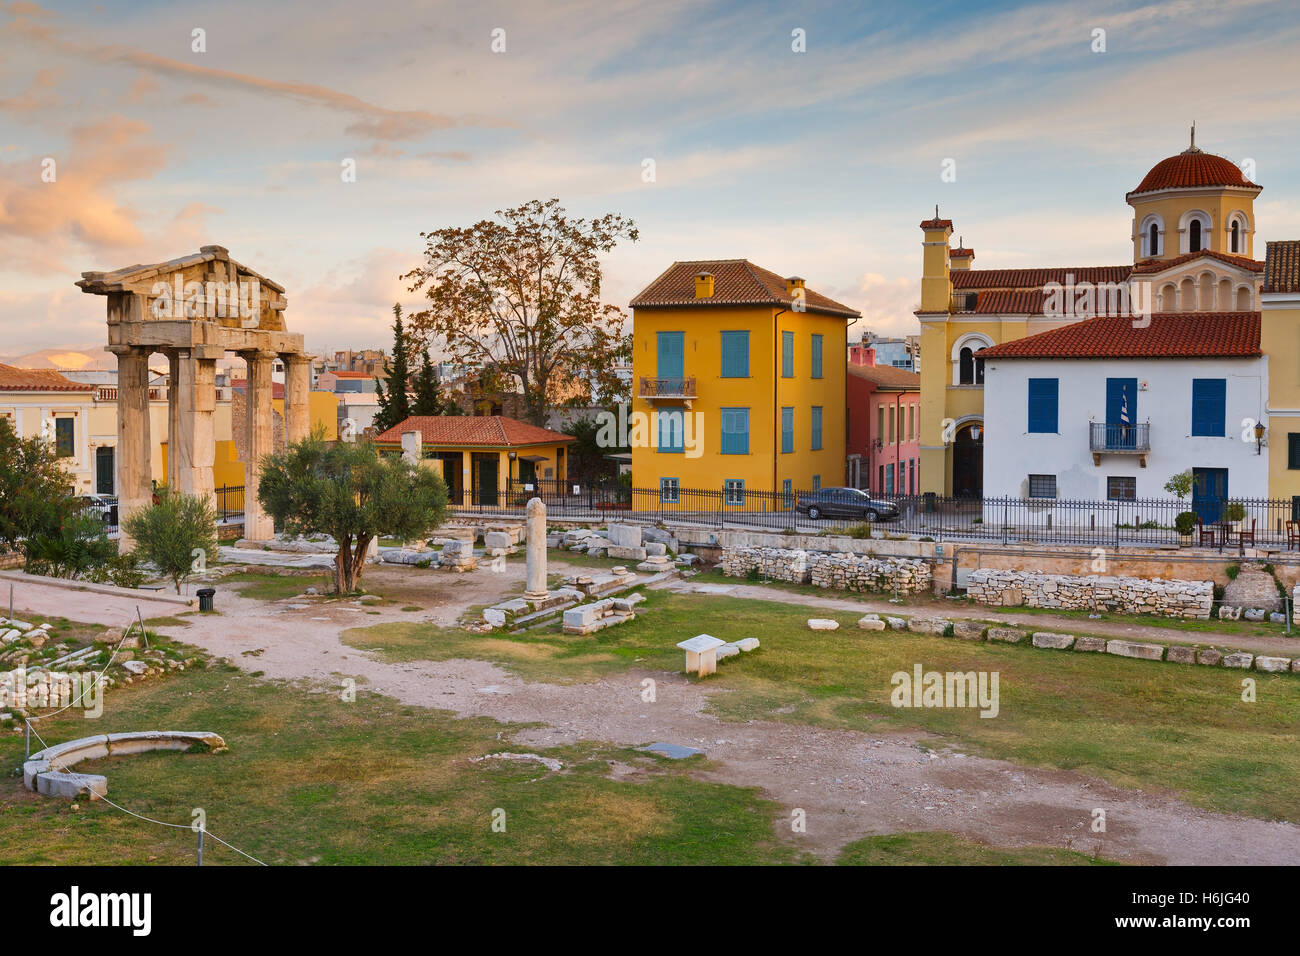 Ancient ruins in city of Athens, Greece. - Stock Image